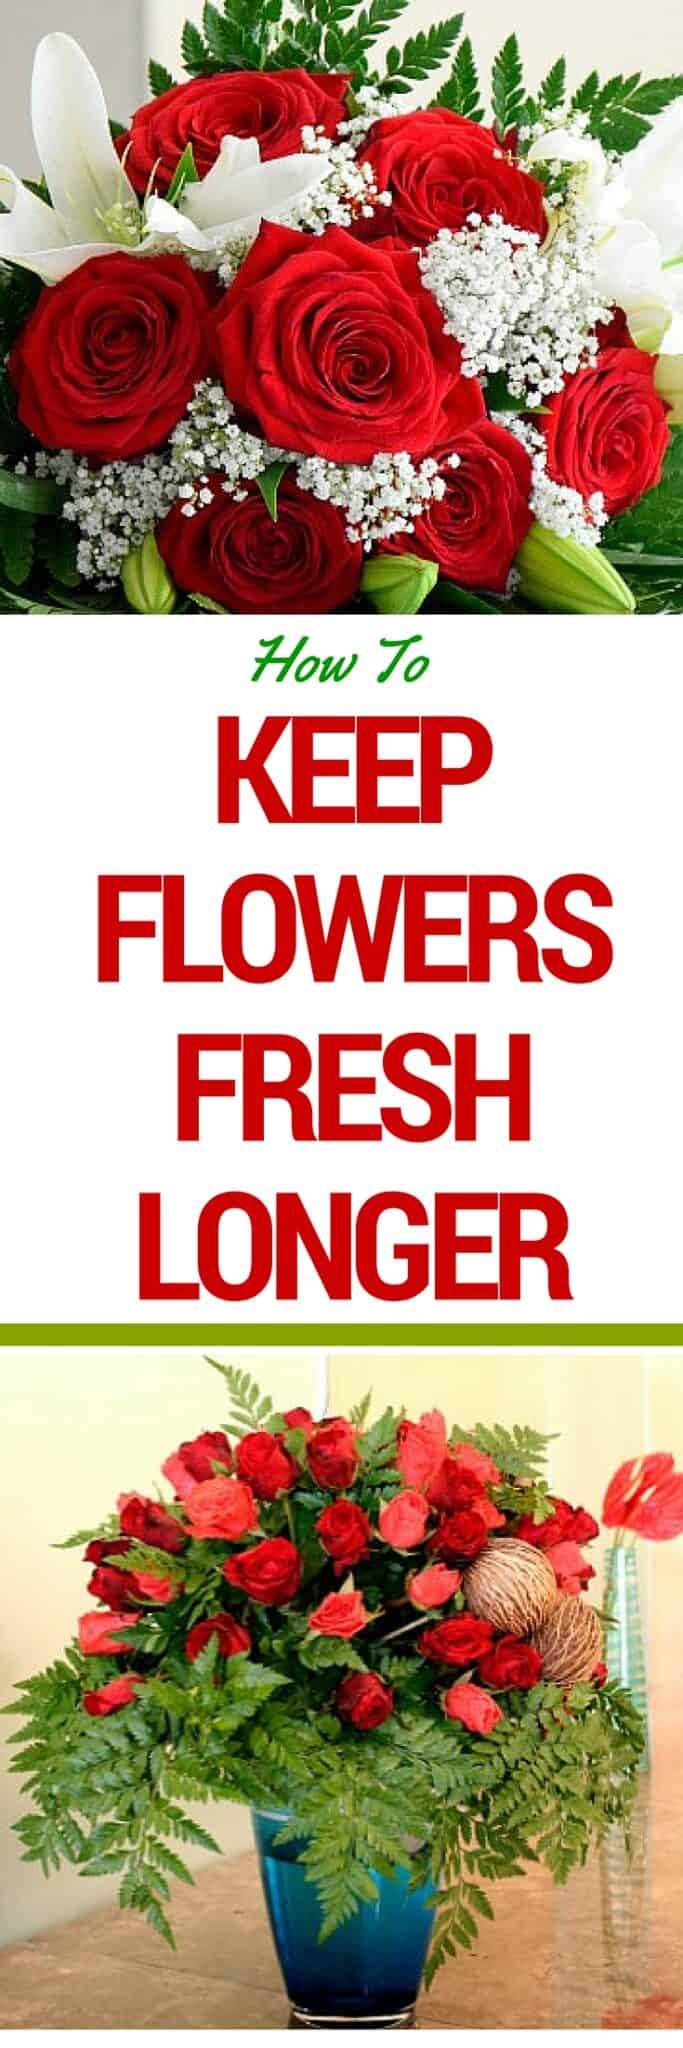 How To Keep Flowers Fresh Longer -- make them last twice as long with these easy tips!